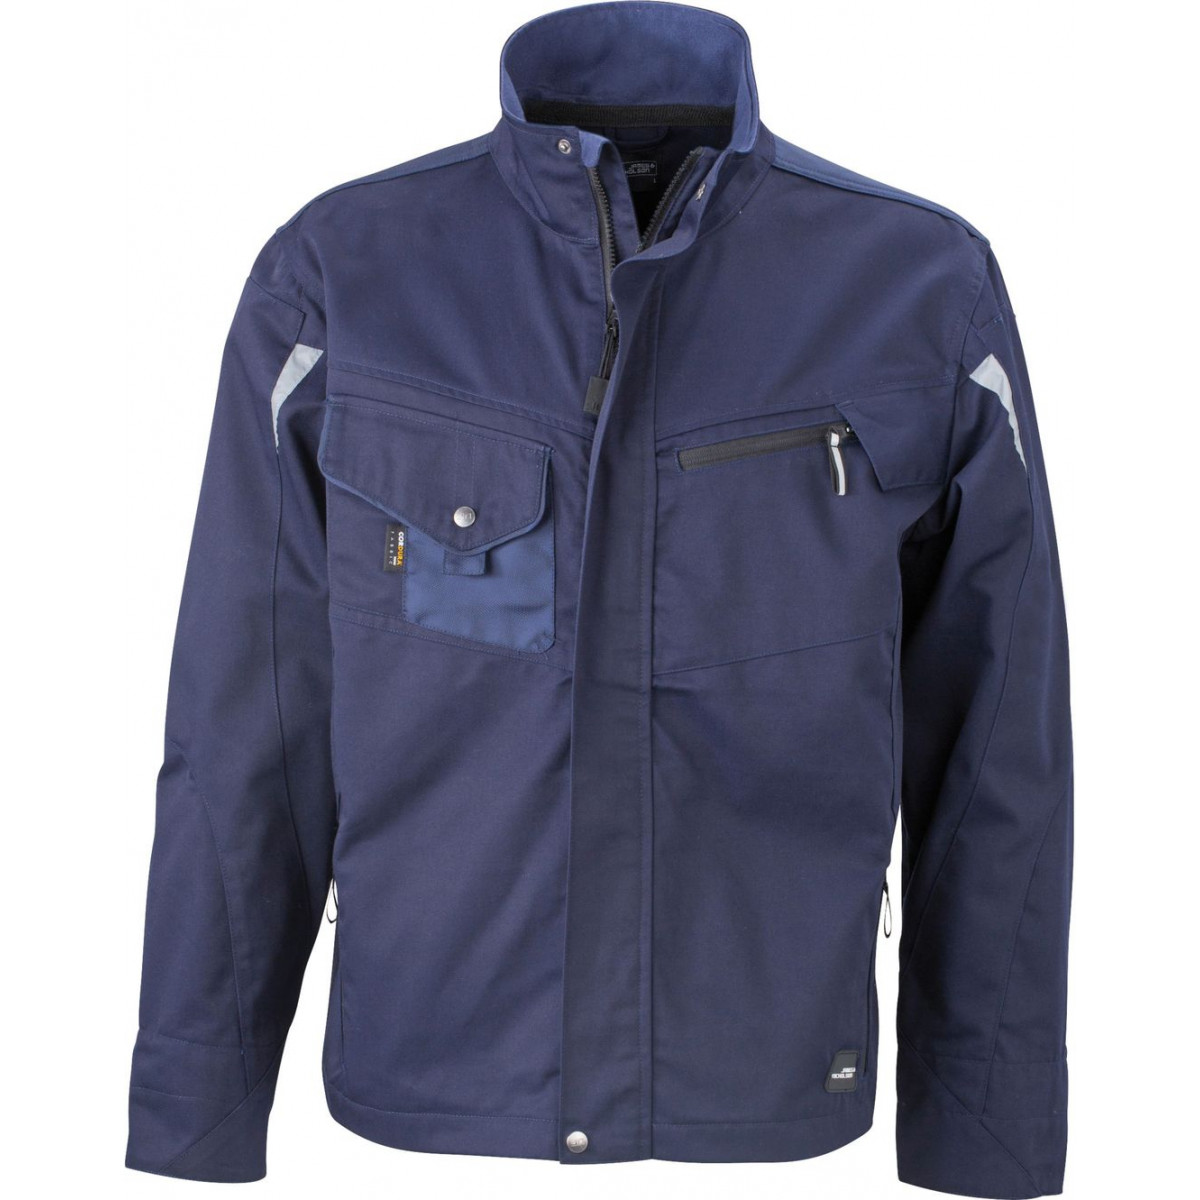 Куртка мужская JN821 Workwear Jacket - Темно-синий/Темно-синий